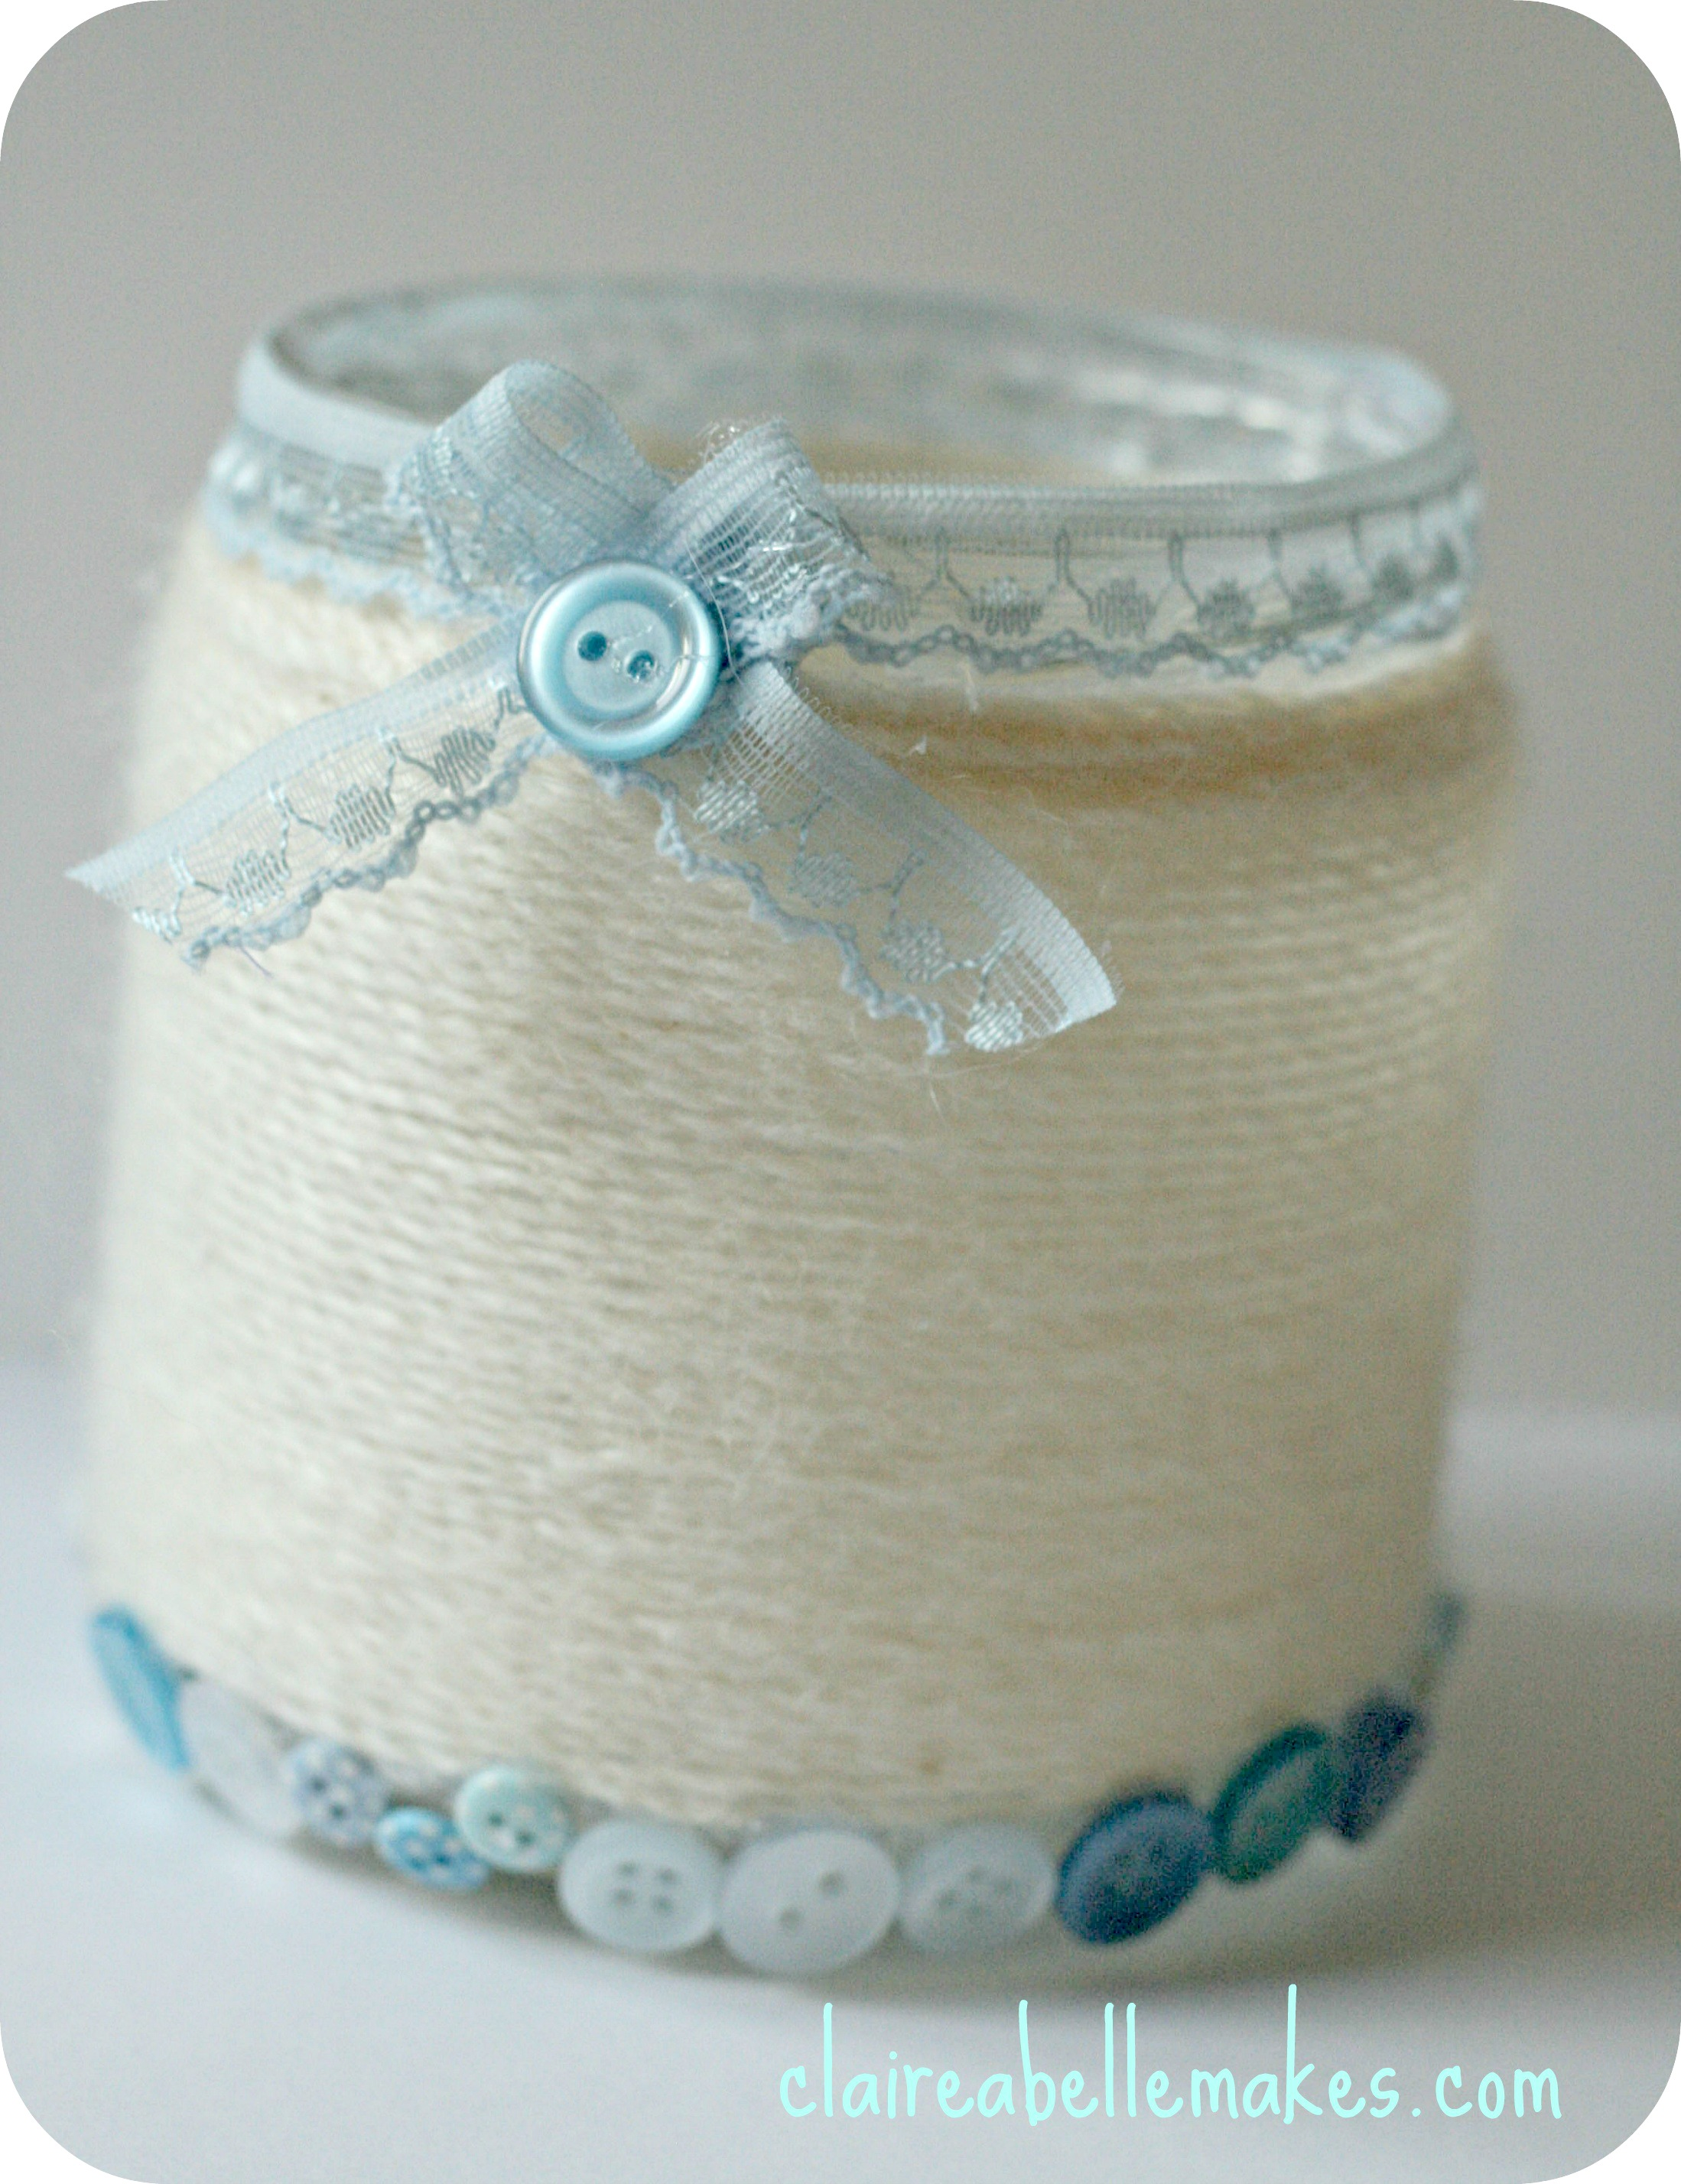 Yarn Wrapped Jar by claireabellemakes